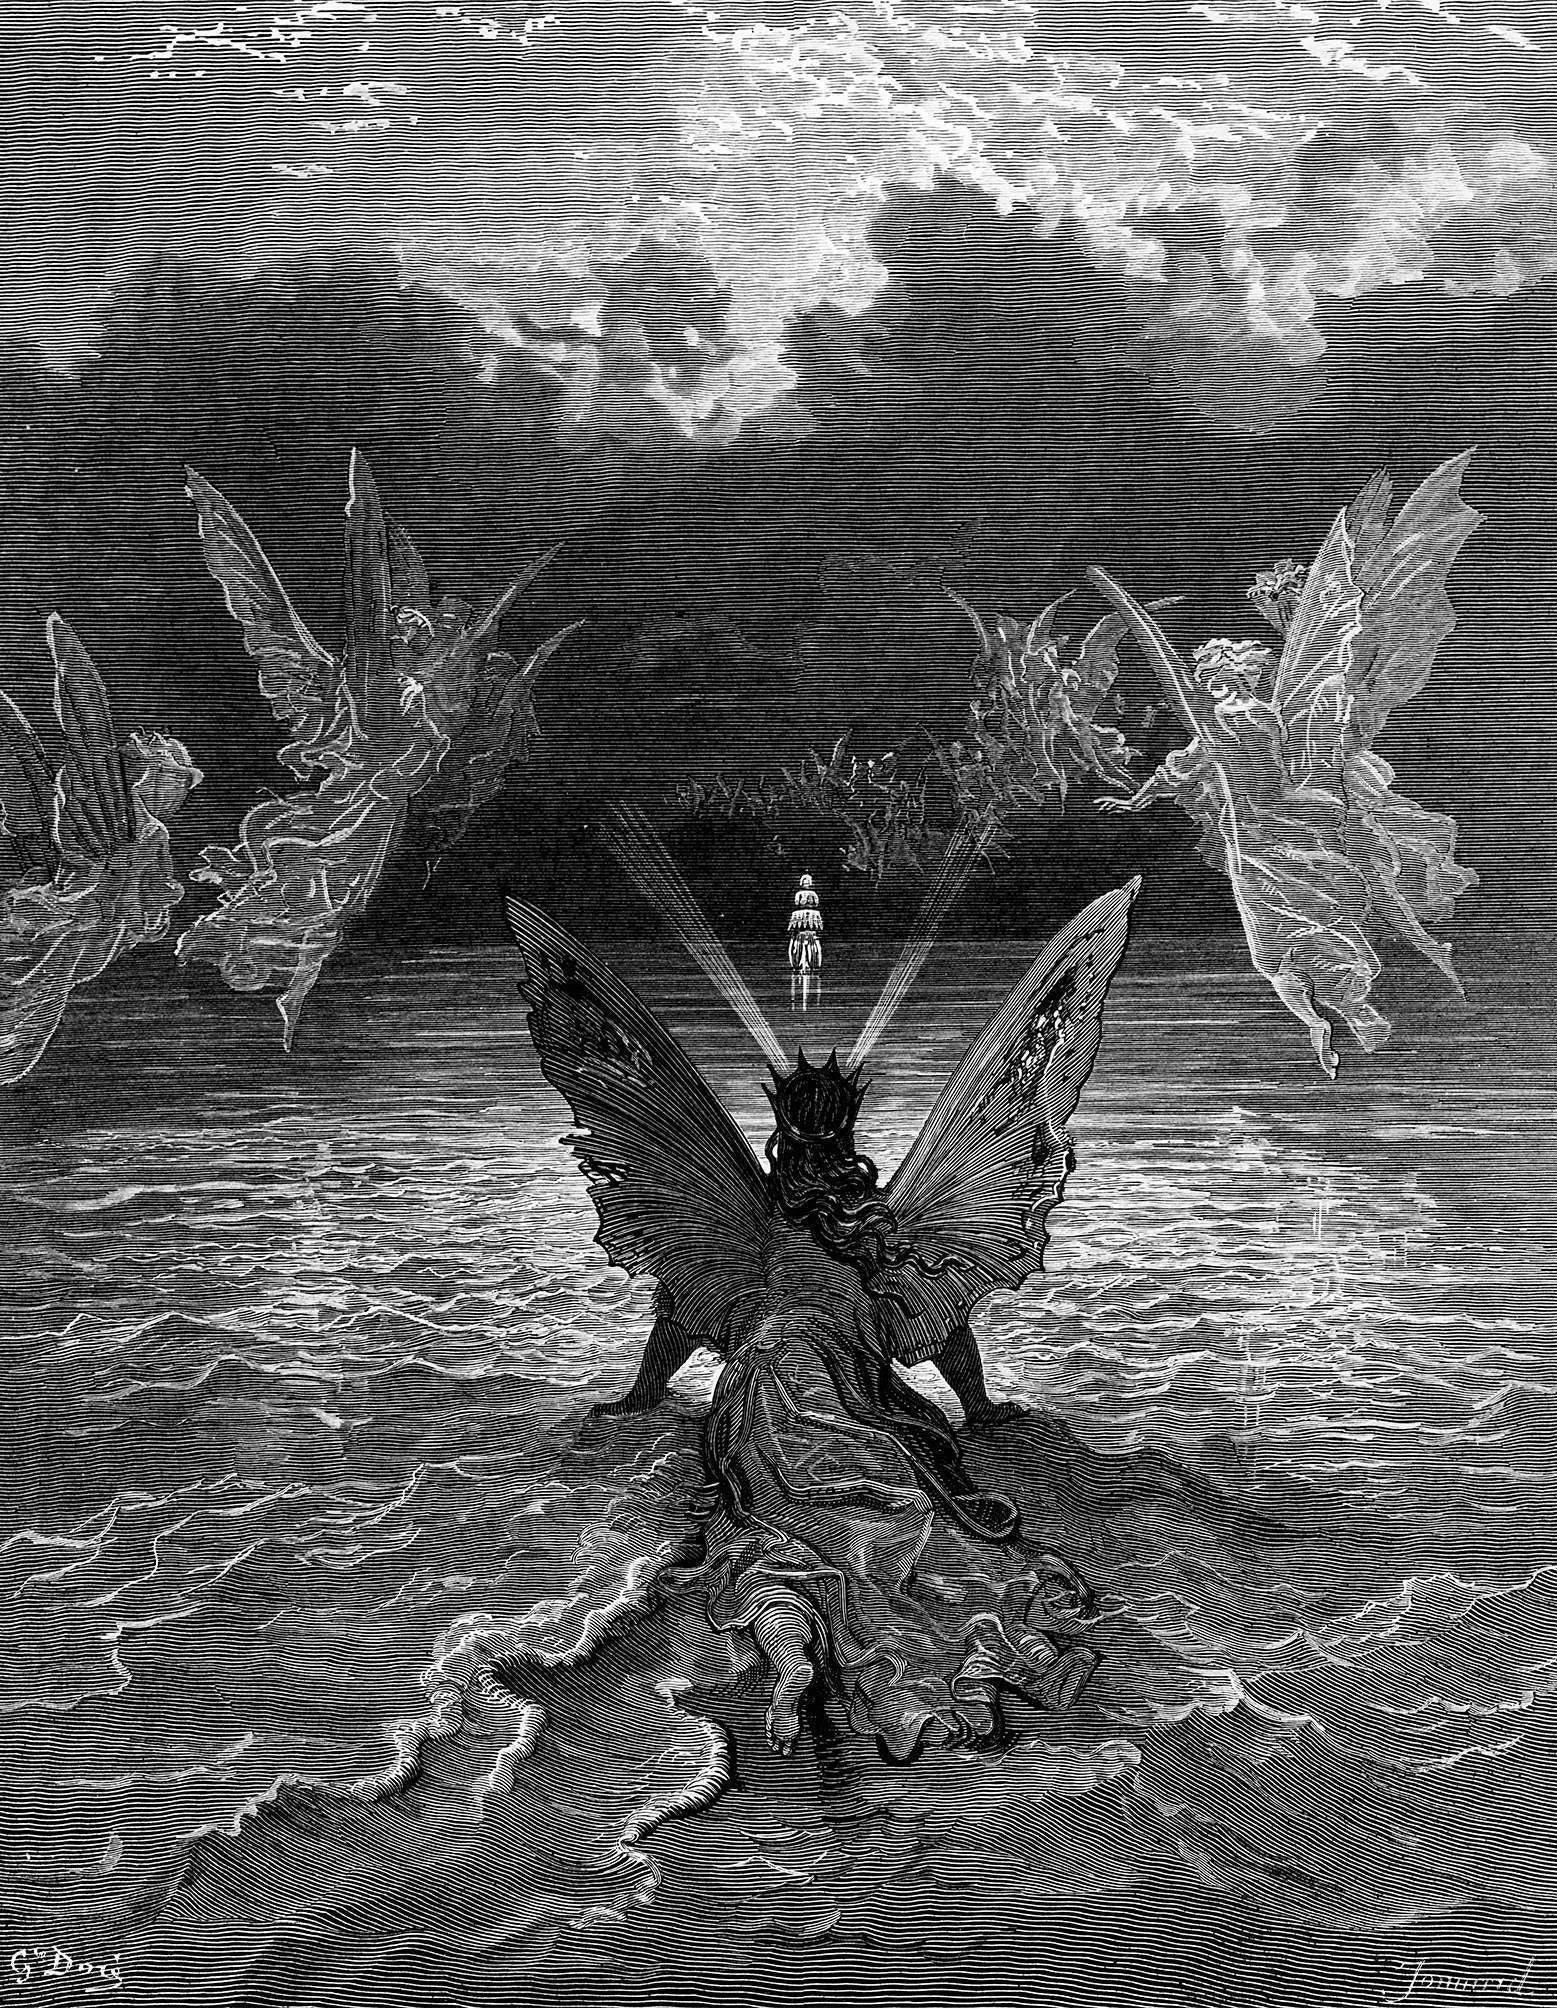 Shipwrecked: looking for God in The Ancient Mariner